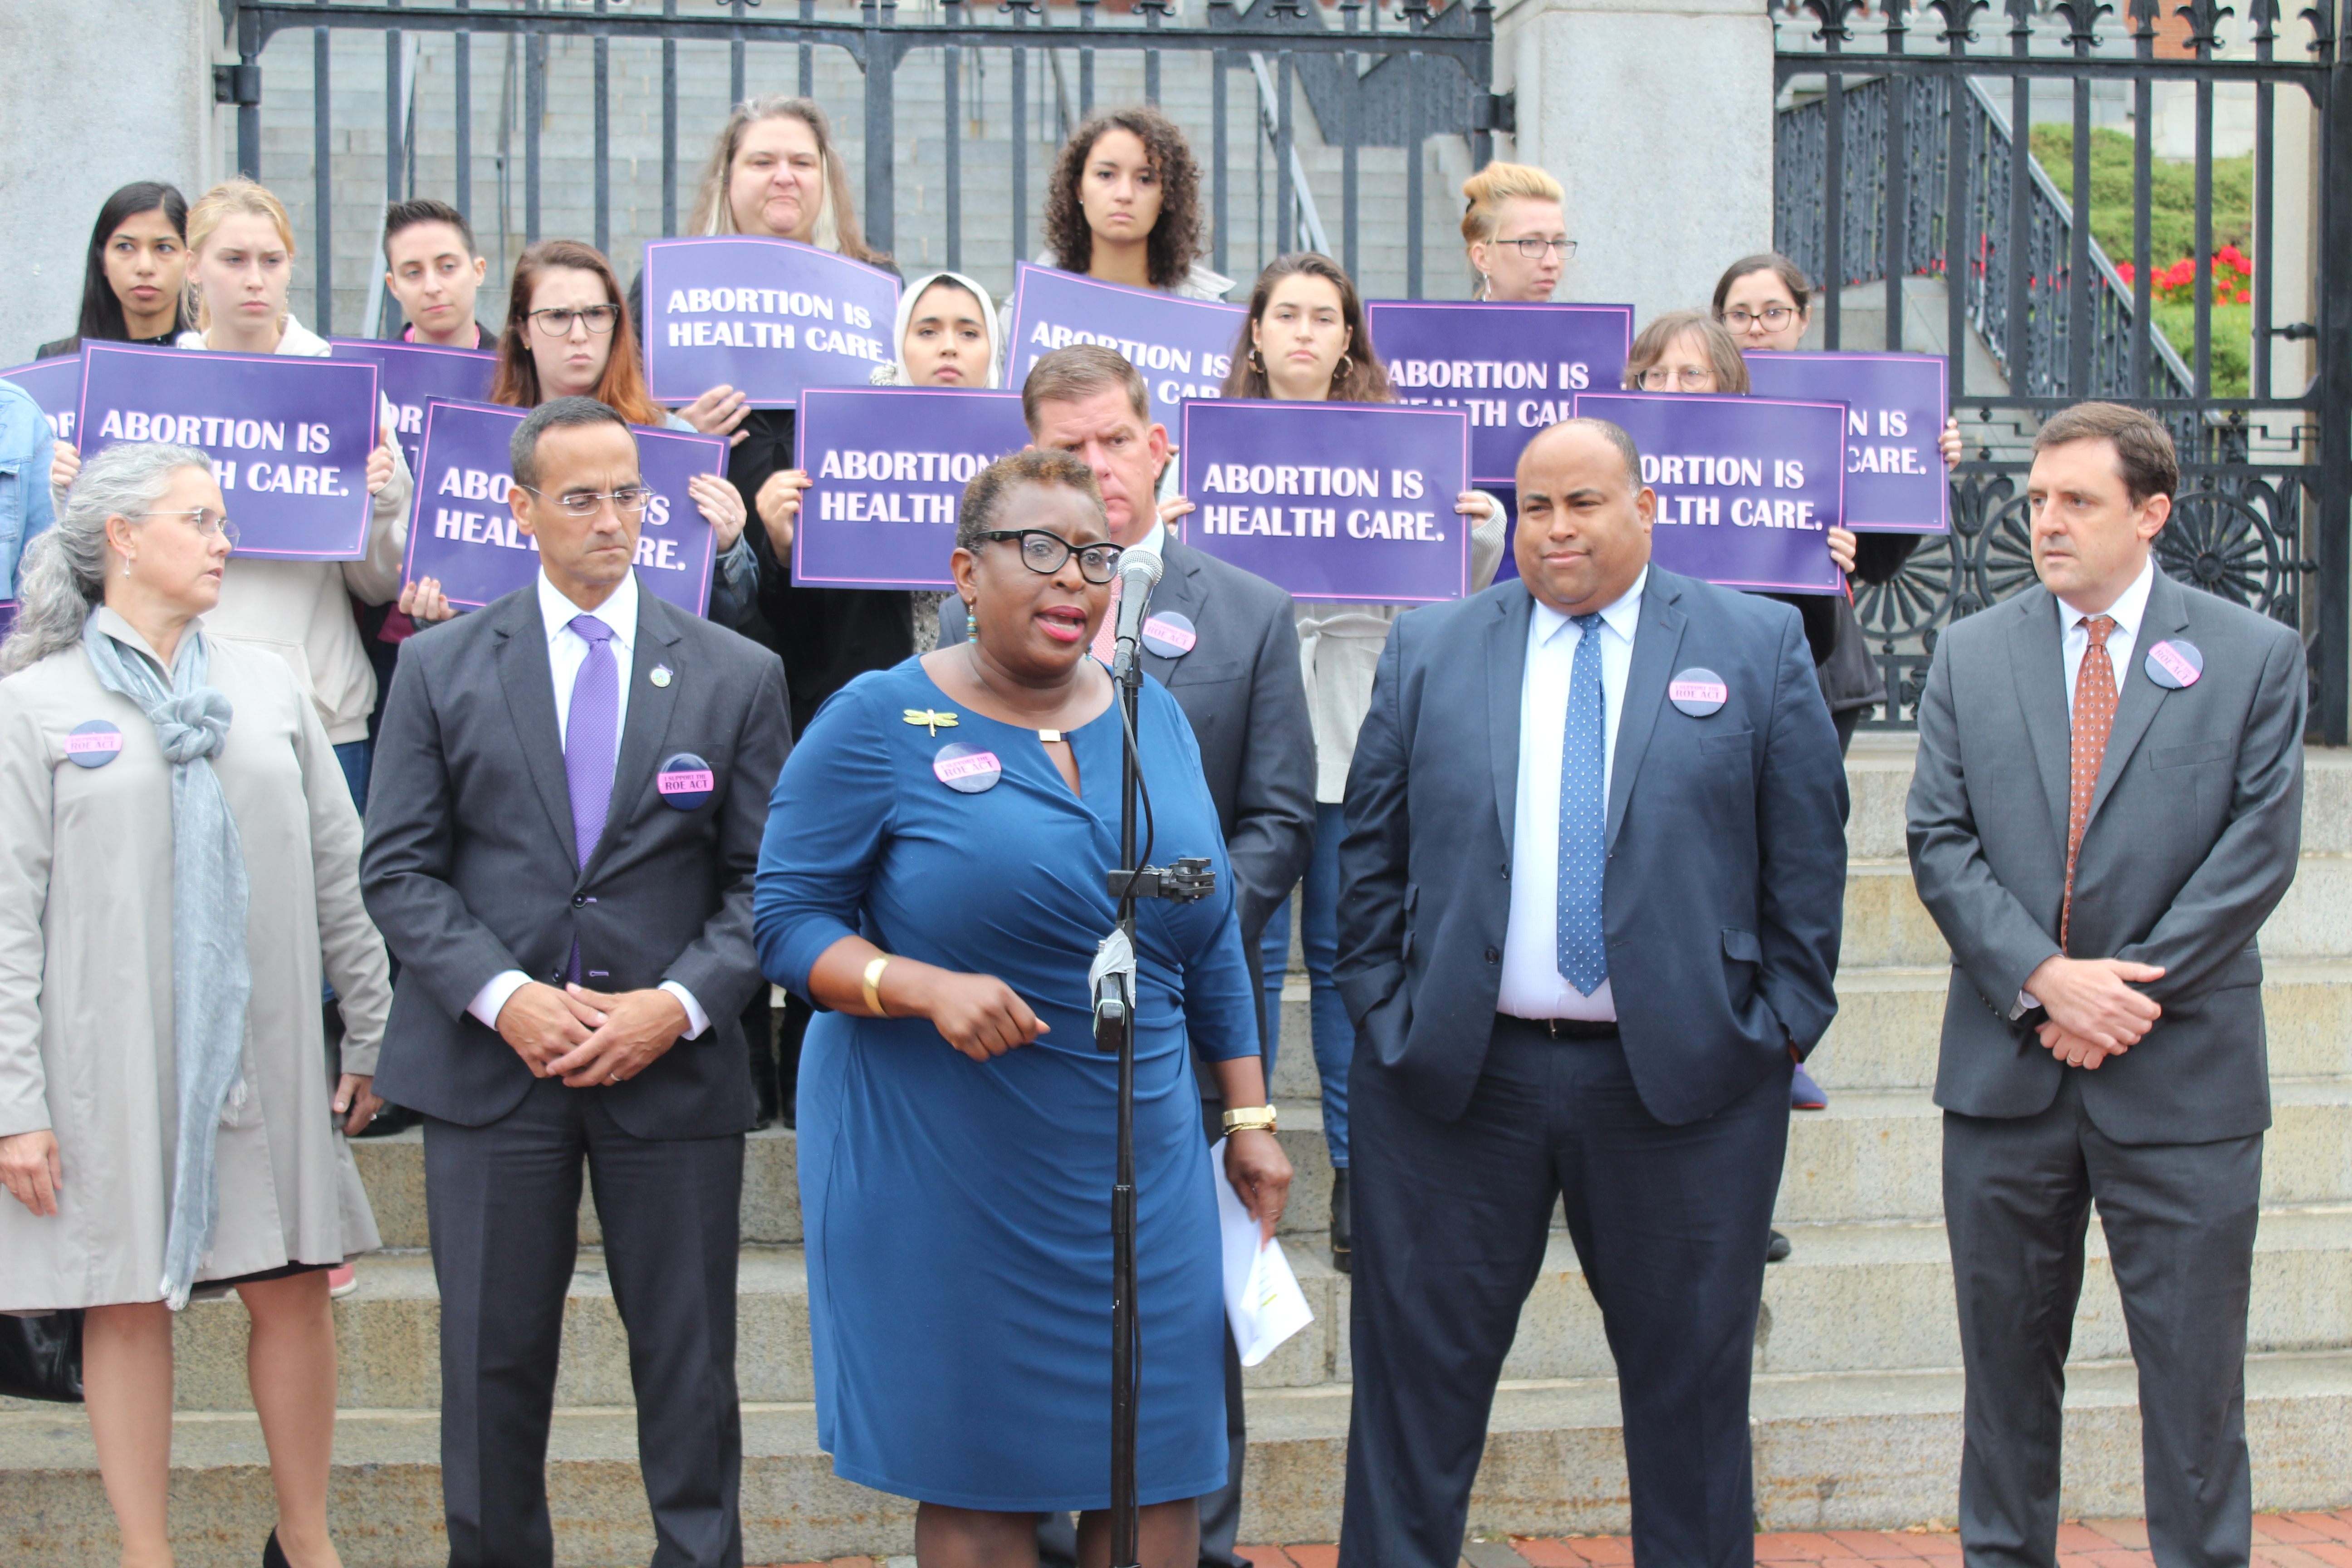 (From left to right) Mayors Nicole LaChapelle of Easthampton, Joseph Curtatone of Somerville, Martin Walsh of Boston, Daniel Rivera of Lawrence and Marc McGovern of Cambridge, stood behind Mayor Yvonne Spicer of Framingham while she spoke of the impact this bill would have on the health care received by women of color in Massachusetts. Photo by Catherine McGloin.